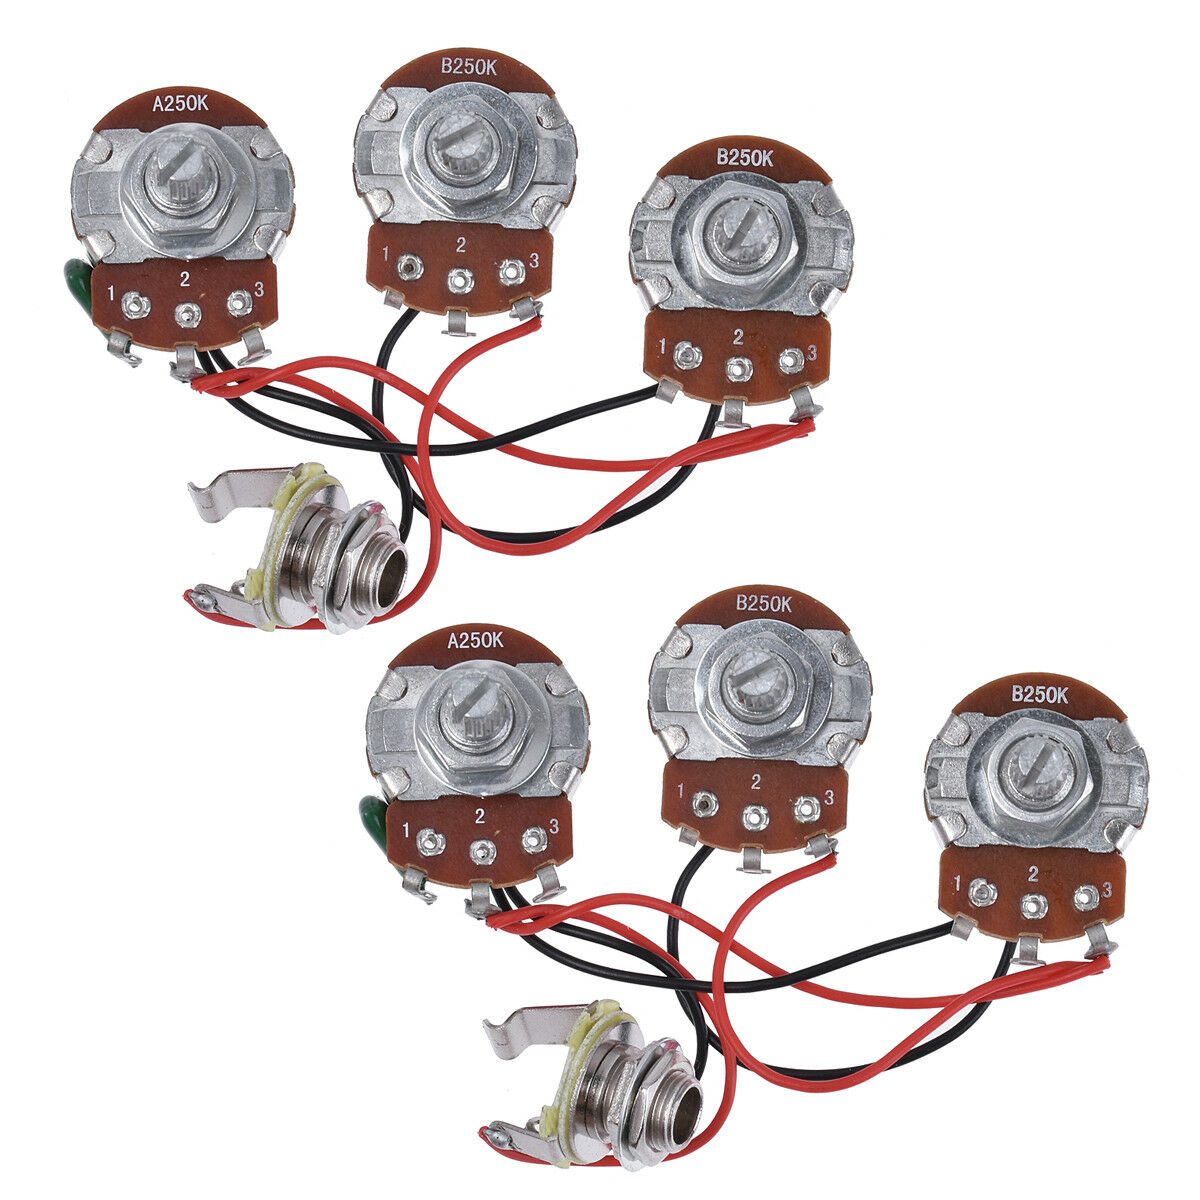 hight resolution of wiring harness prewired kit 250k pots 2v1t for jazz bass guitar parts set of 2